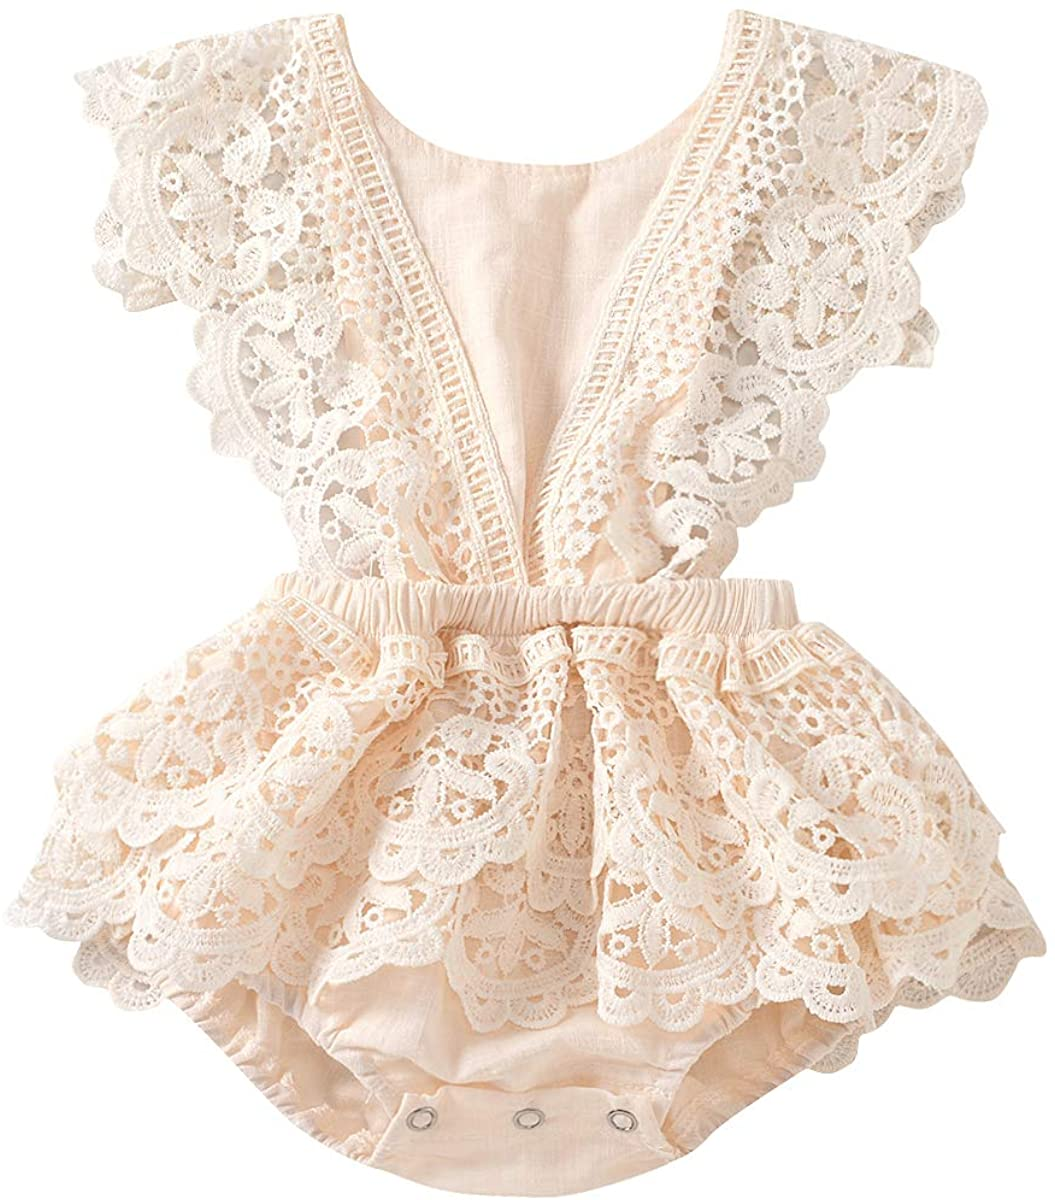 Baby Girl Lace Romper Japan Maker New Oklahoma City Mall Boho Outfits Clothes Newborn Photography